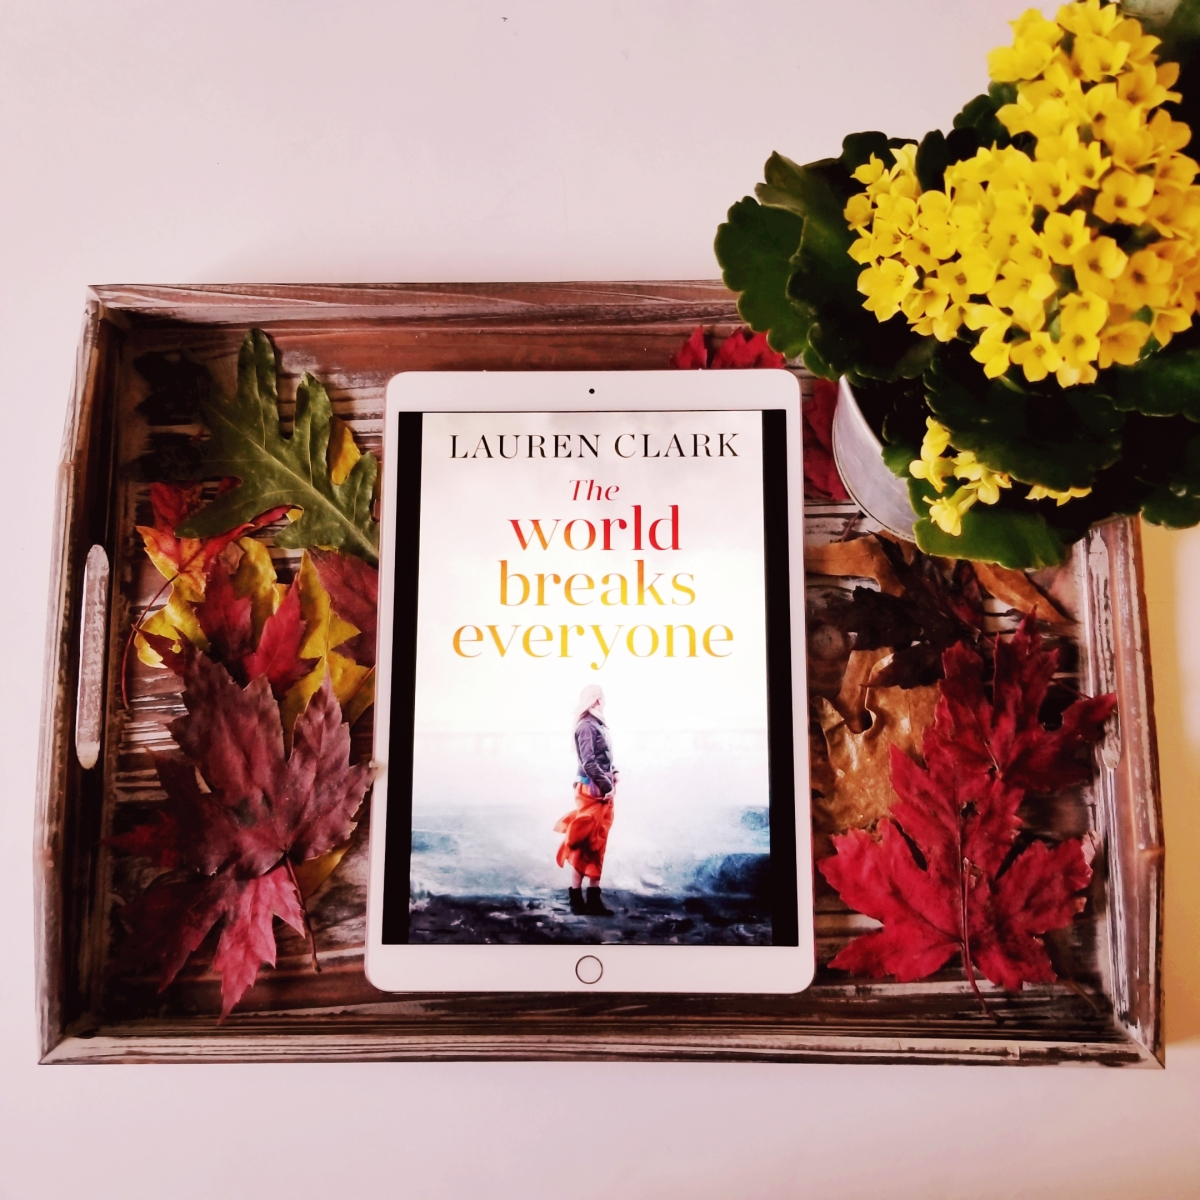 The World Breaks Everyone by Lauren Clark #bookreview #tarheelreader #thrTWBE @lauramcneillbks #camelliapress #theworldbreakseveryone #6bookbestiesworldbreakseveryone #6bookbestieapproved